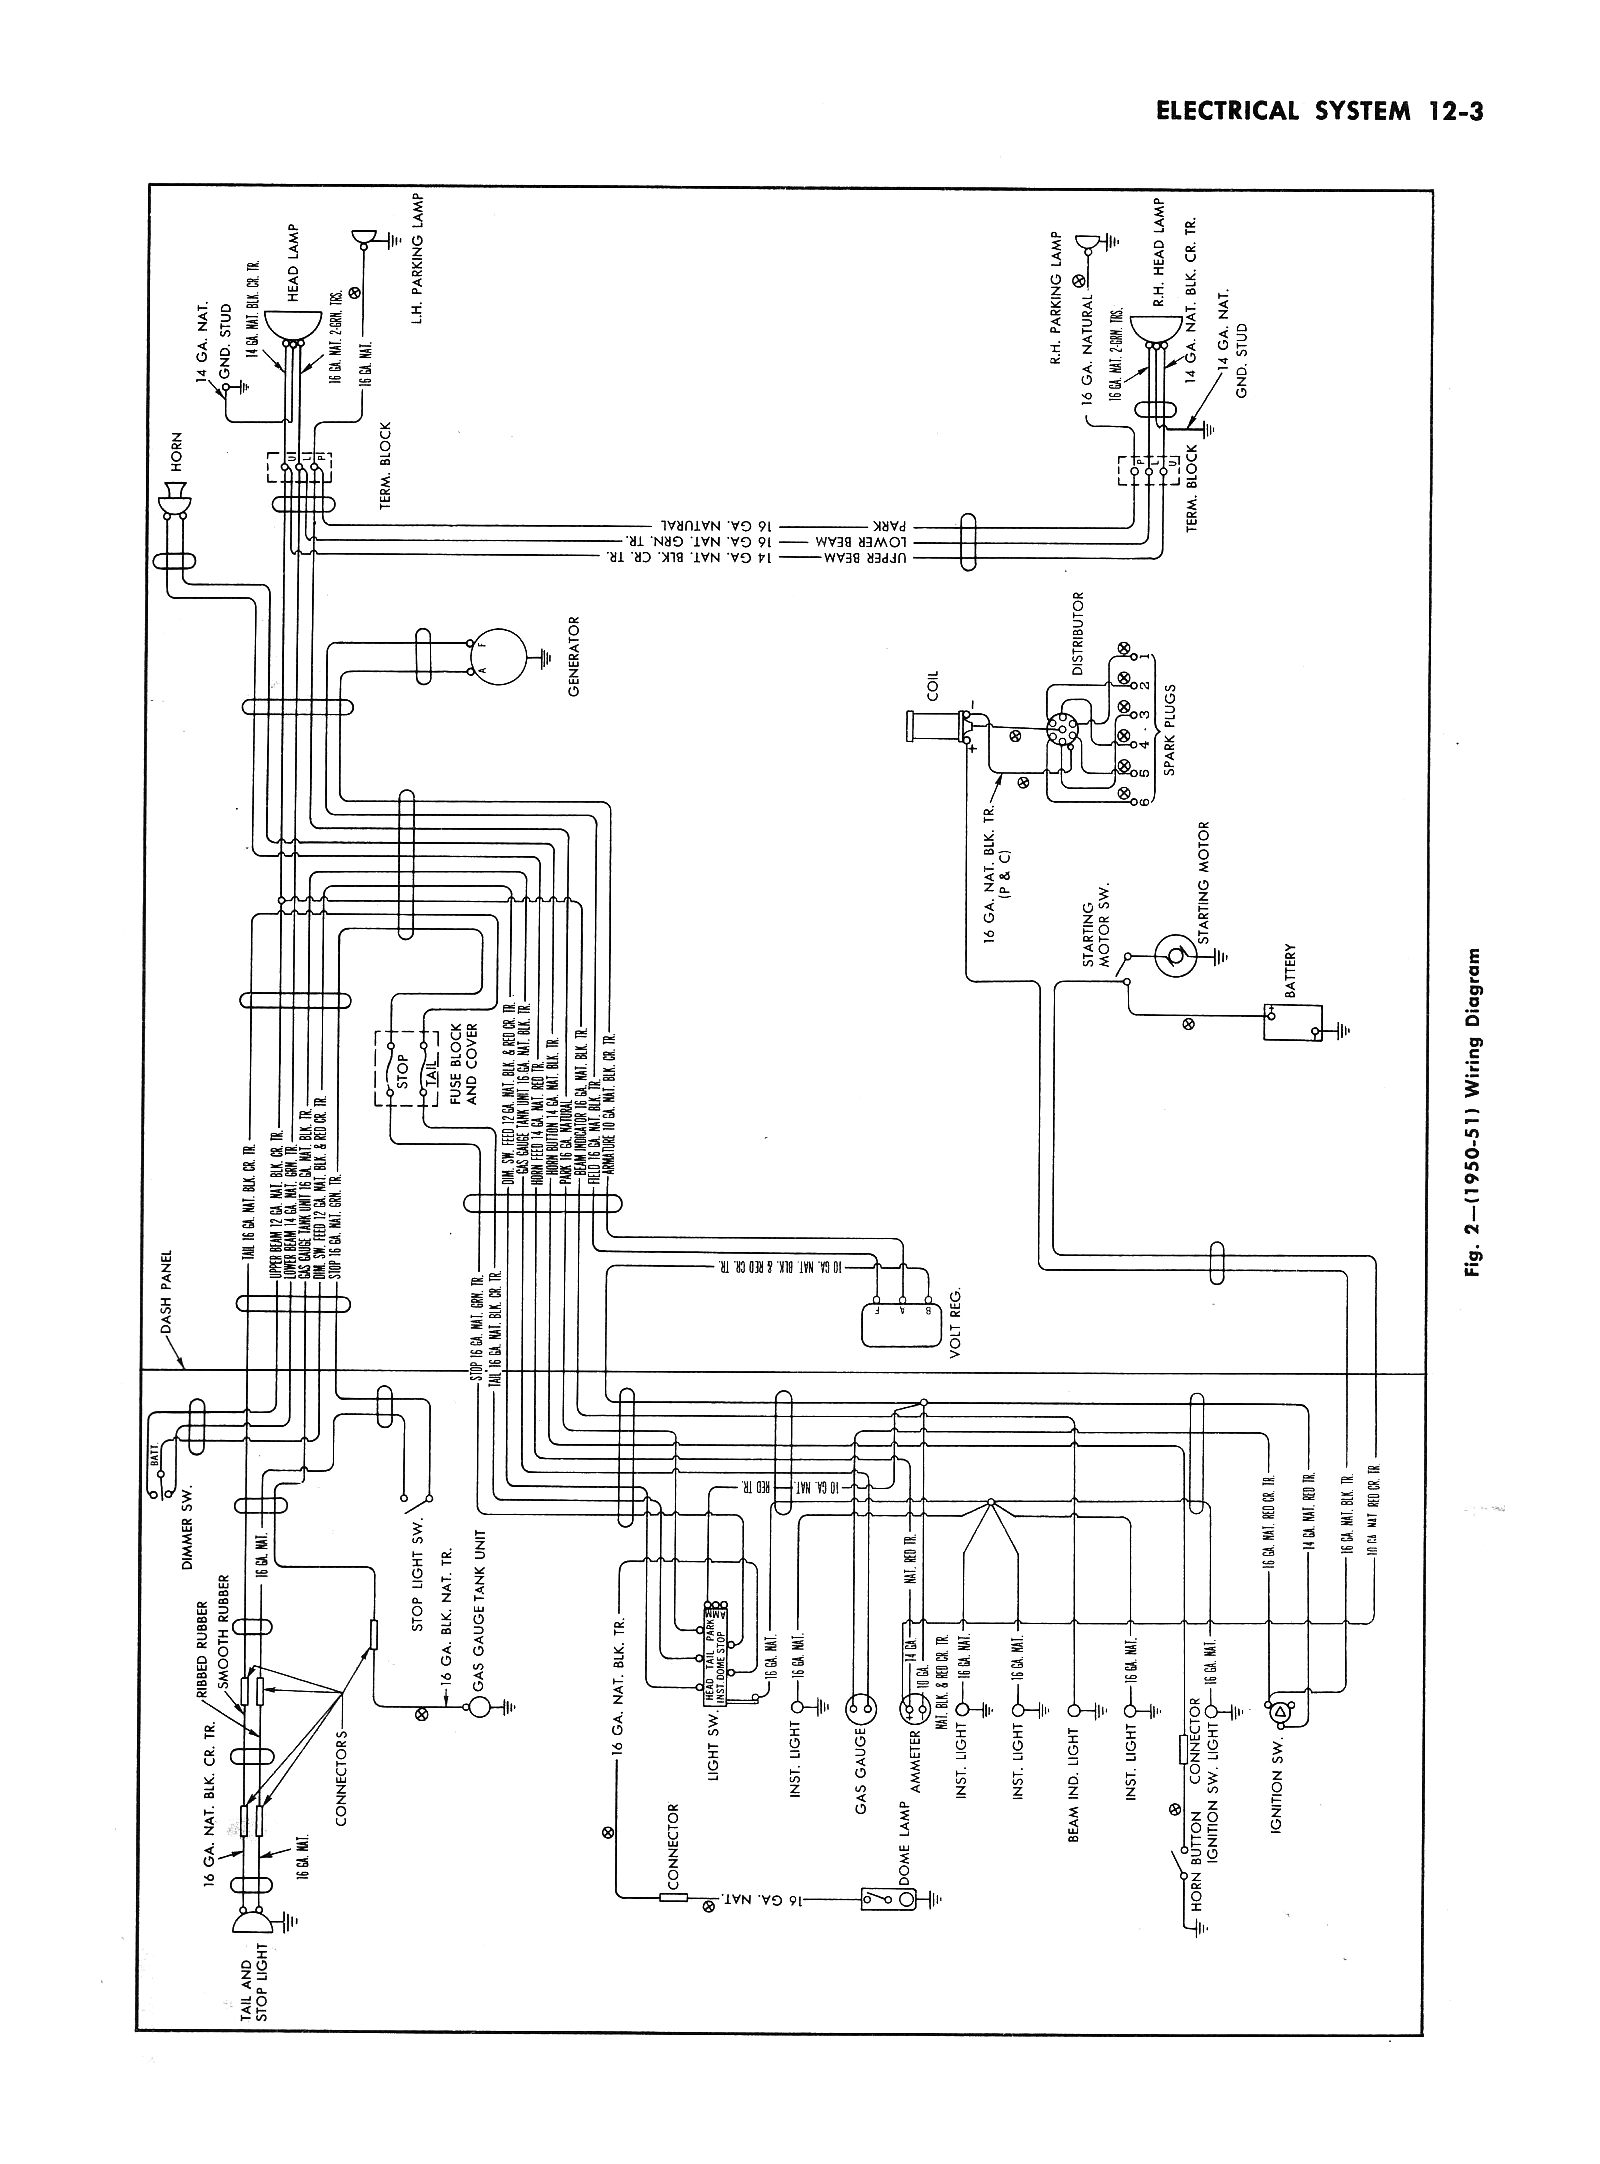 51ctsm1203 1950 chevy truck wiring harness on 1950 download wirning diagrams 2004 Silverado Tail Light Wiring Diagram at soozxer.org